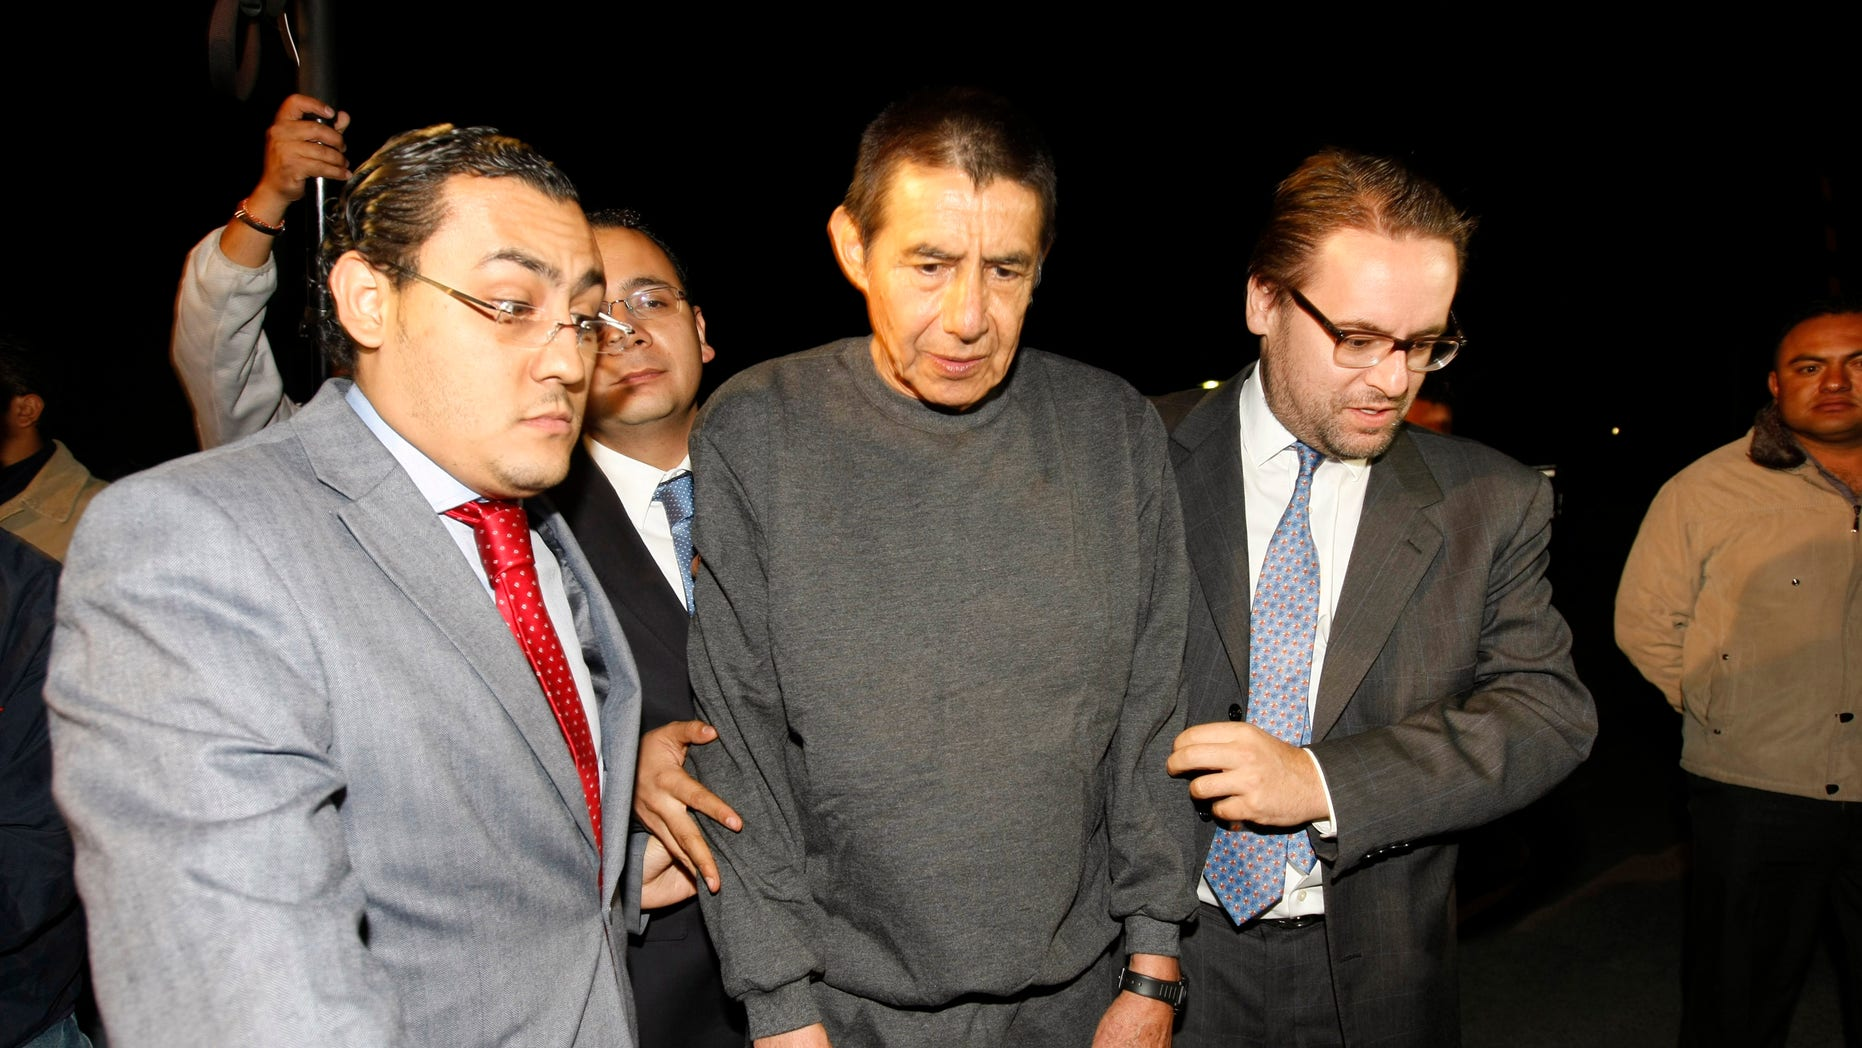 Retired Mexican Army General Tomas Angeles Dauahare, center, is escorted by unidentified members of his legal team as he leaves the Altiplano maximum security prison in Almoloya de Juarez, Mexico, Thursday, April 18, 2013. Federal prosecutors have dropped organized crime charges against Dauahare, accused of aiding a drug cartel after determining that the witness testimony was not enough to sustain their case. He had been in prison since last year, charged with protecting members of the Beltran Leyva cartel. (AP Photo)